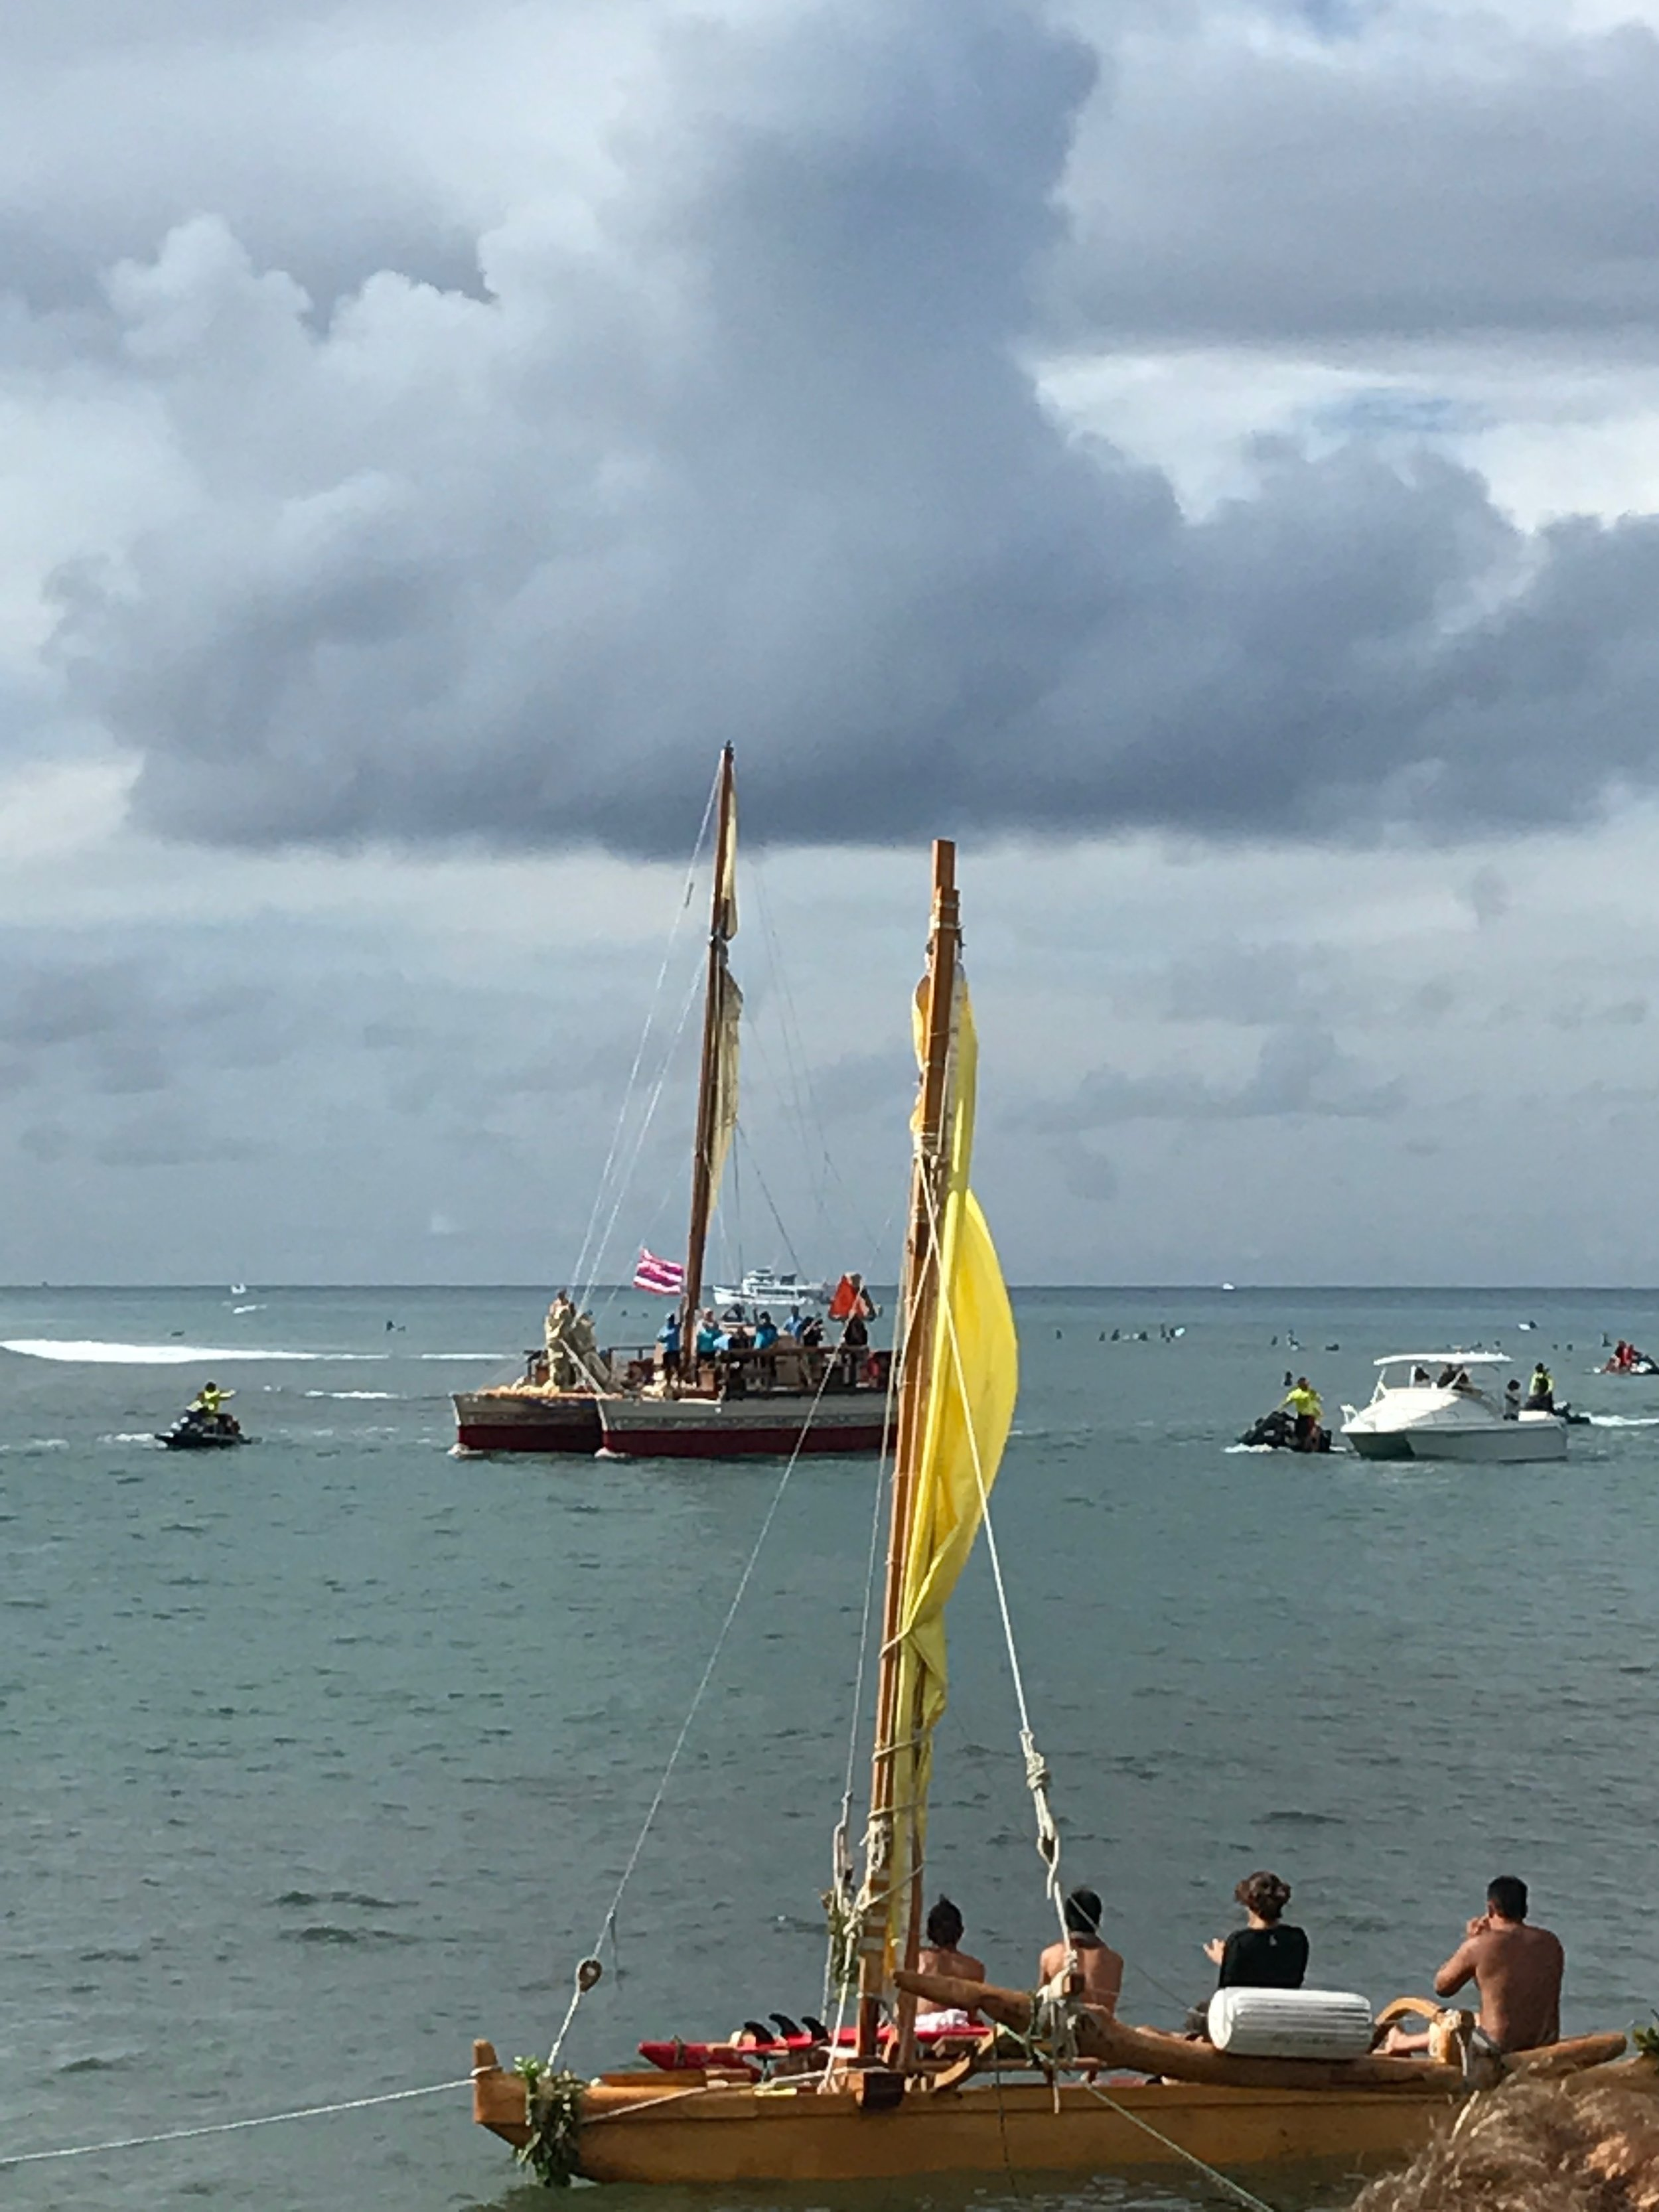 """The Hokule'a canoe, officially a Hawai'i state treasure,returned home to Honolulu's Magic Island, Saturday, June 17, 2017, after being away for over three years. Sewing a """"lei of peace and compassion,"""" the canoe visited 150 ports around the world.  Photo: Myles Cohen, NVS student."""